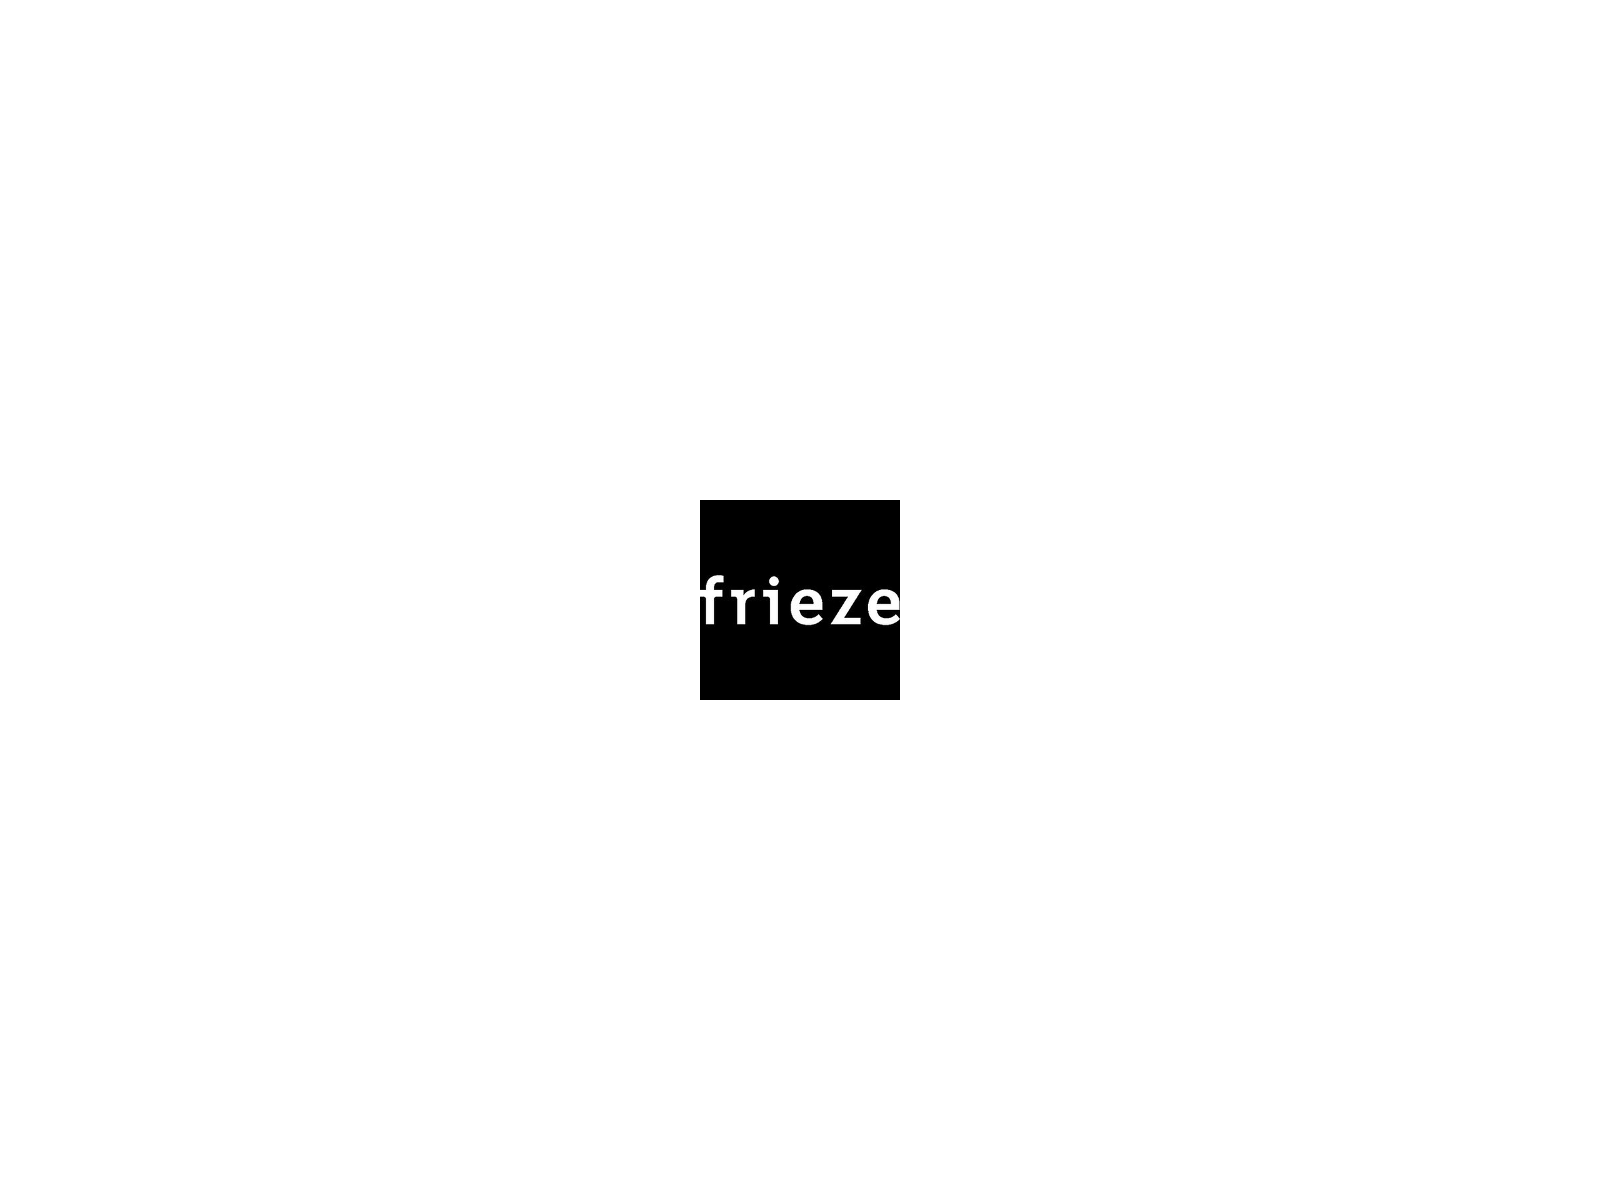 Logo_Template_Frieze.png